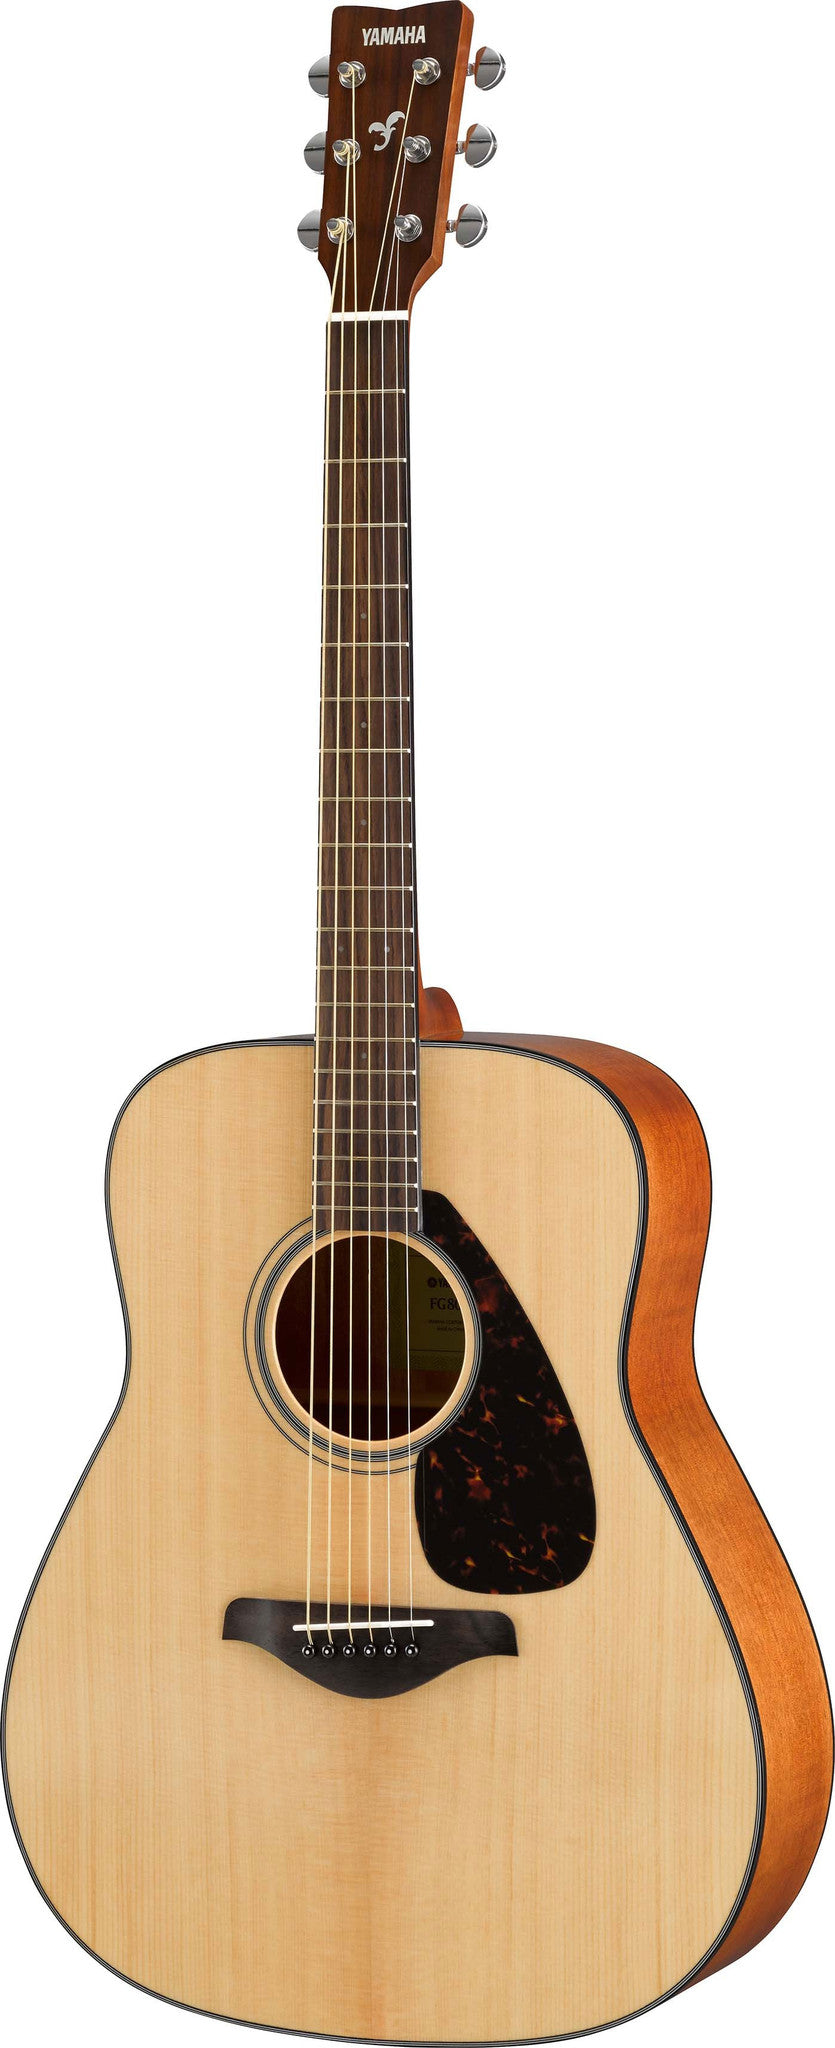 Yamaha FG800 Dreadnought Acoustic Guitar Bundle